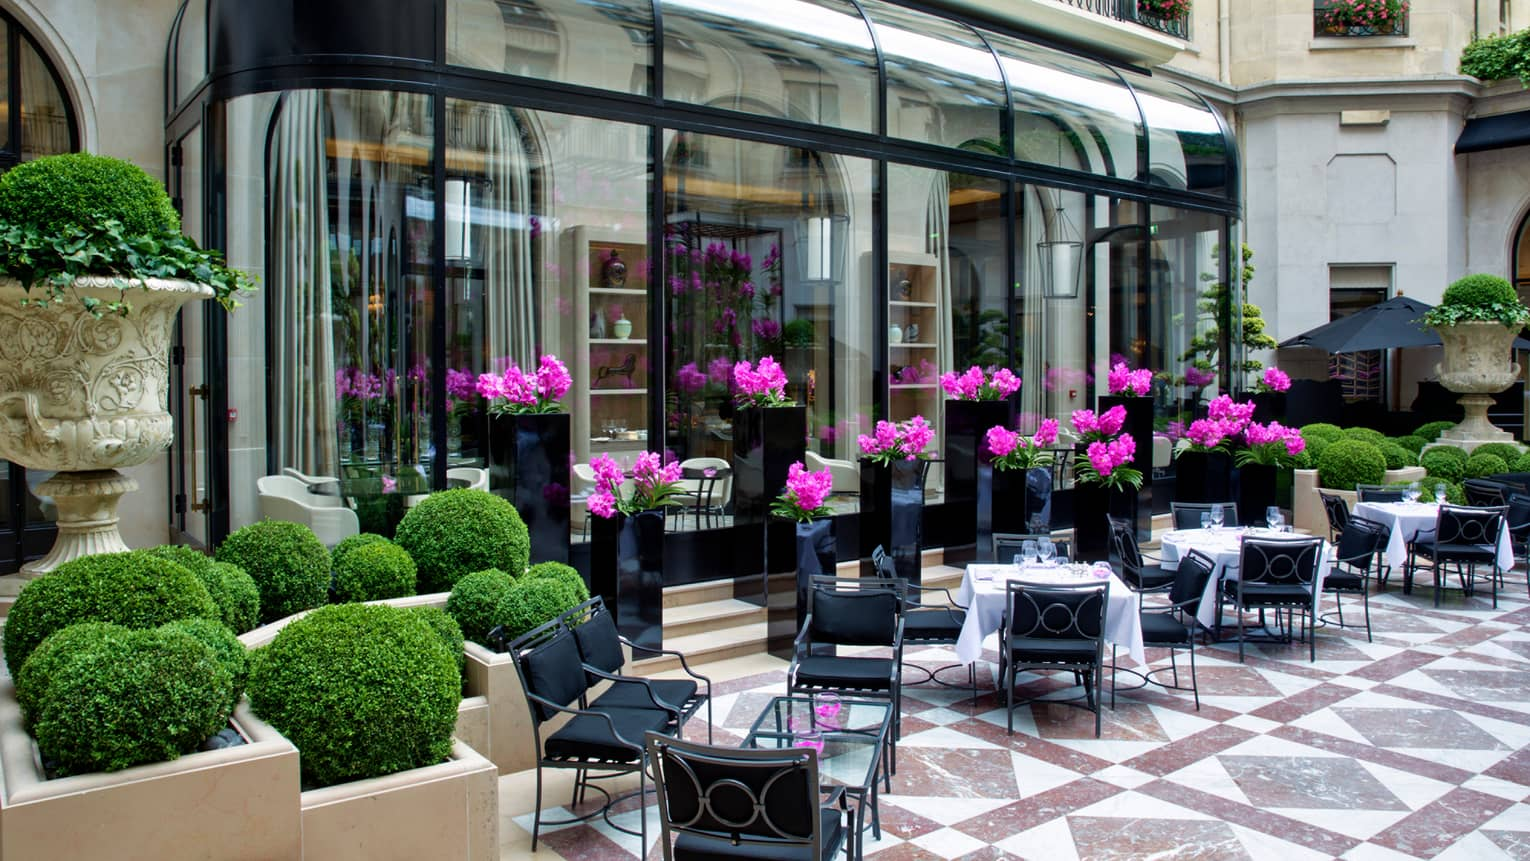 L'Orangerie dining patio by potted shrubs, purple flowers